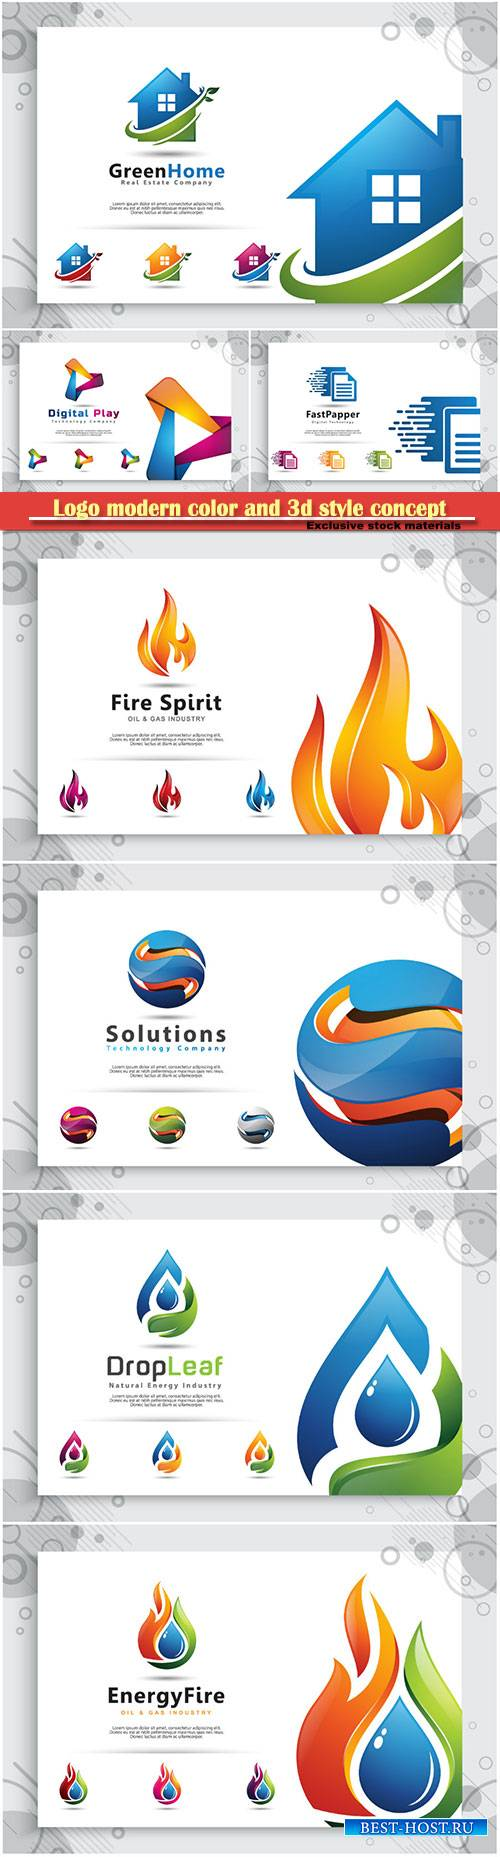 Logo modern color and 3d style concept, business and company identity # 3